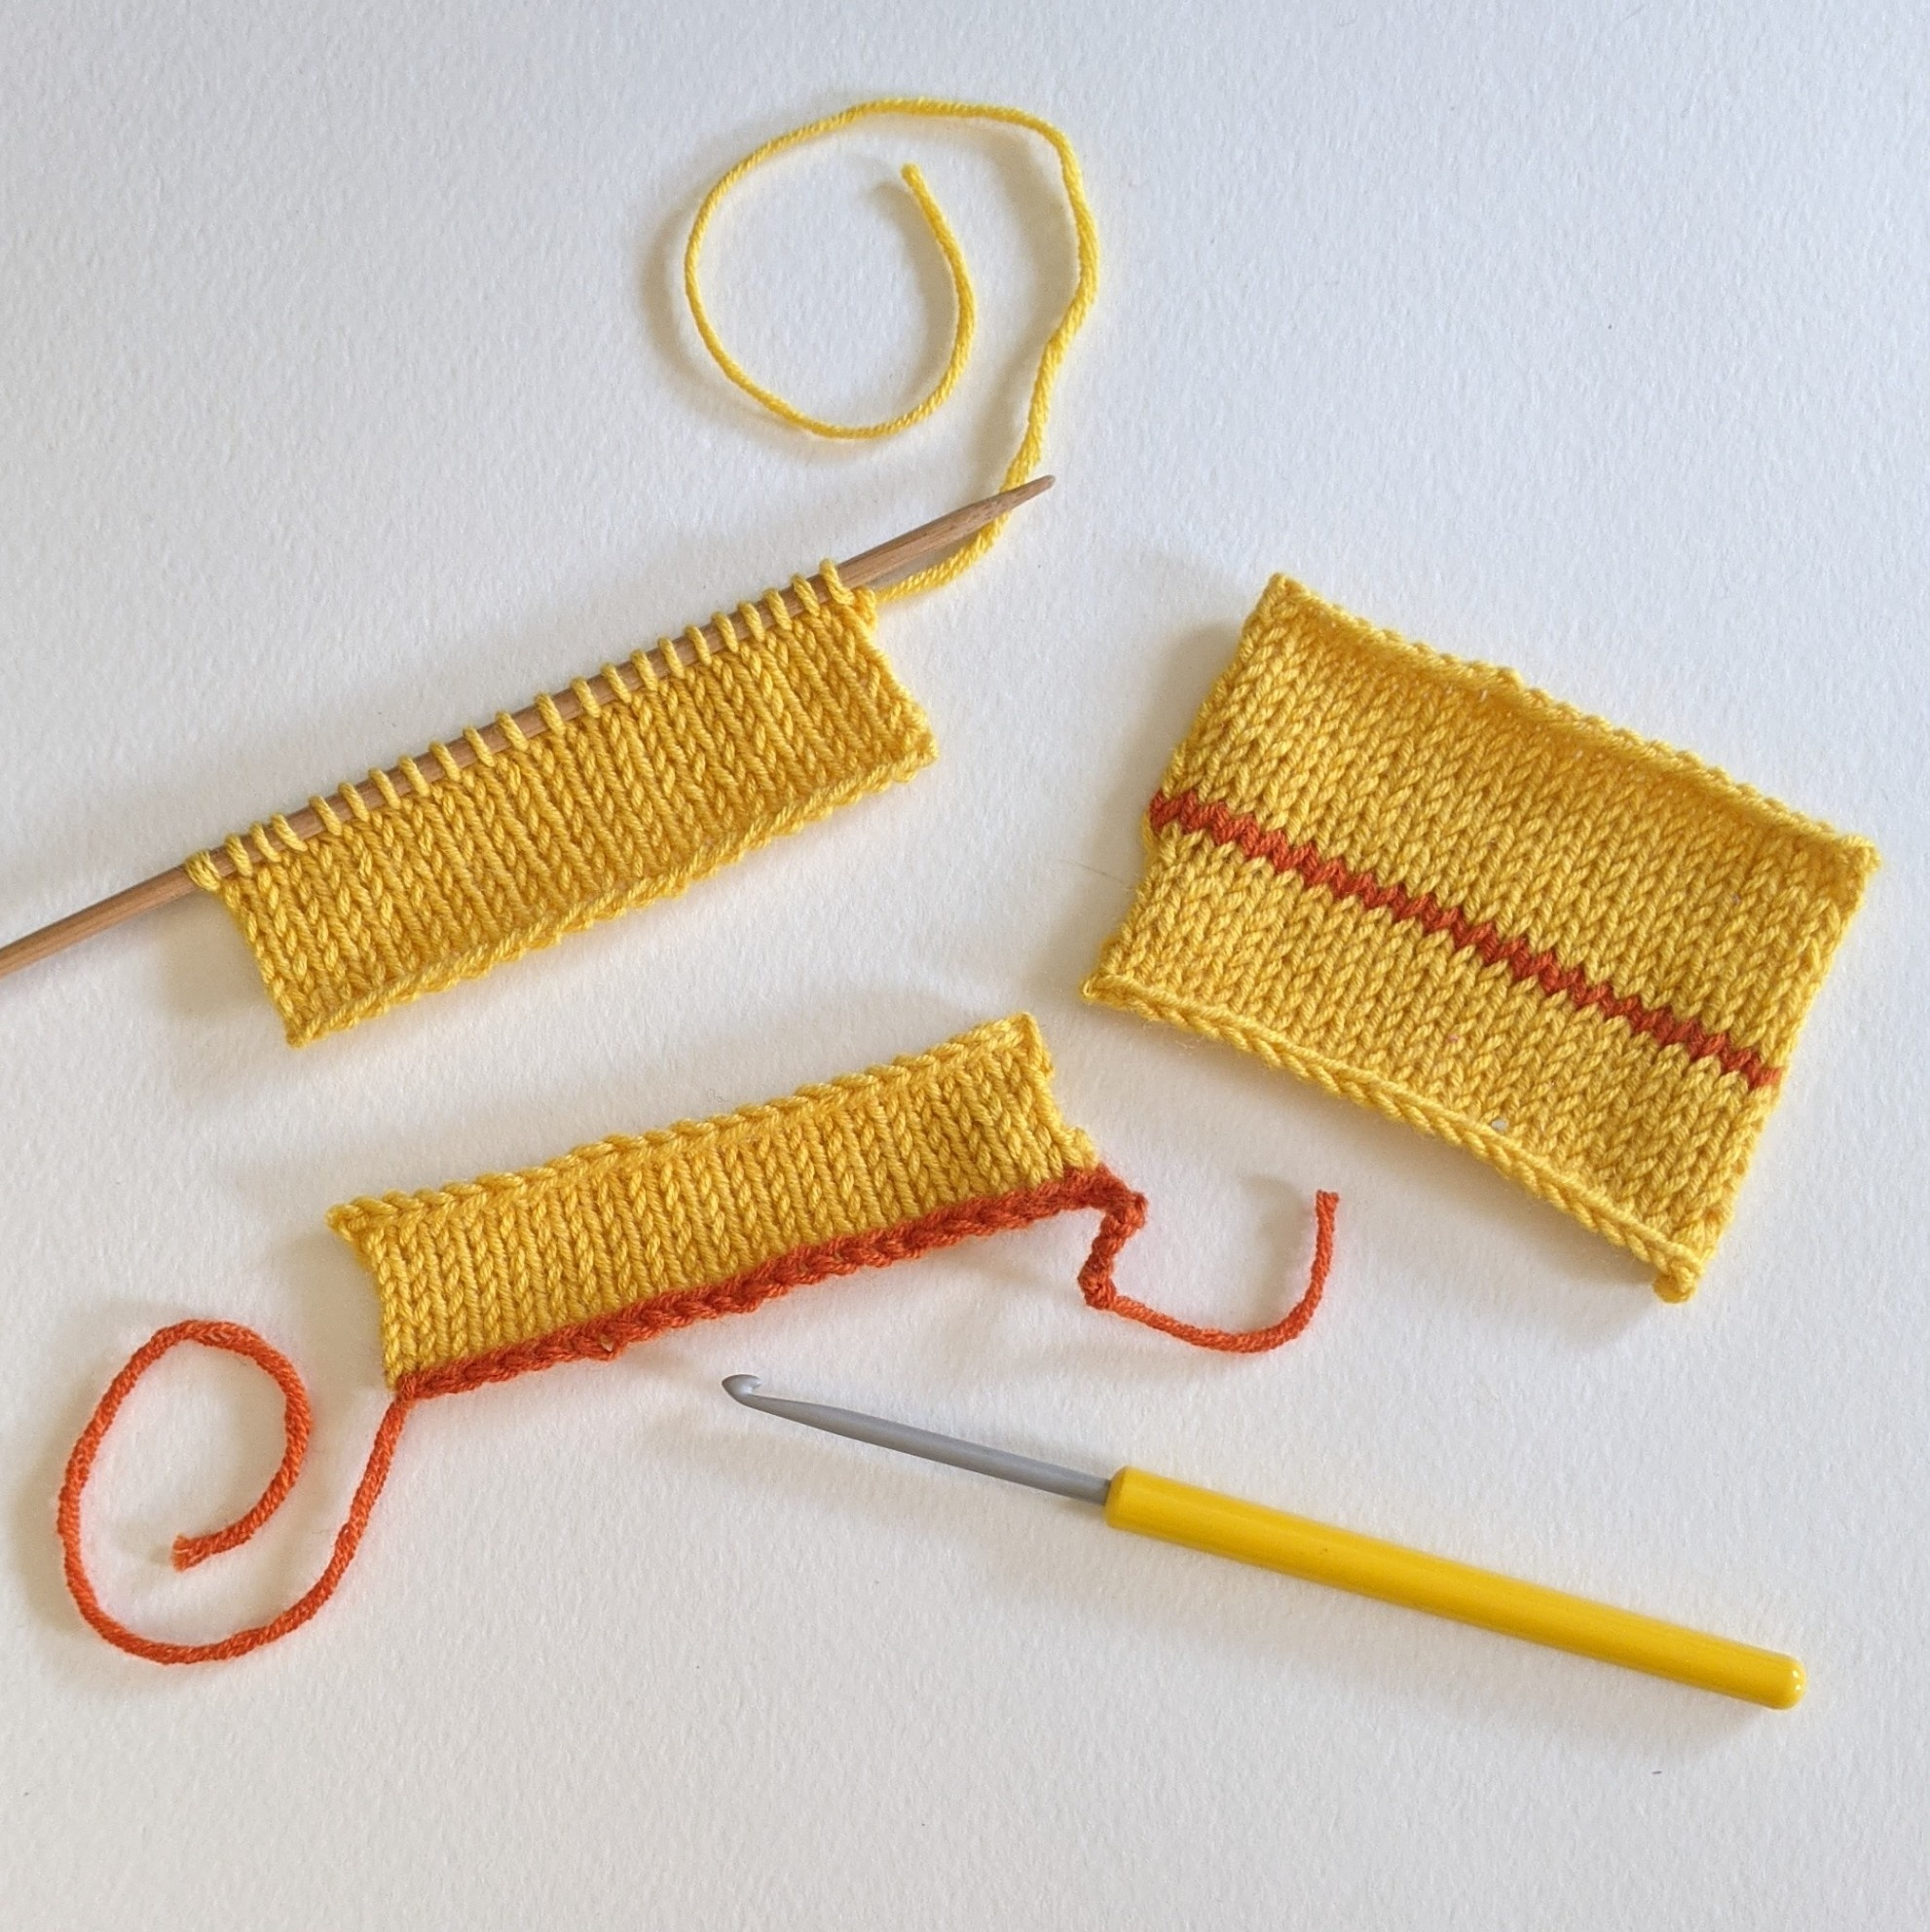 Summer Snacks! Kitchener Stitch and Provisional Cast On - Online via Zoom